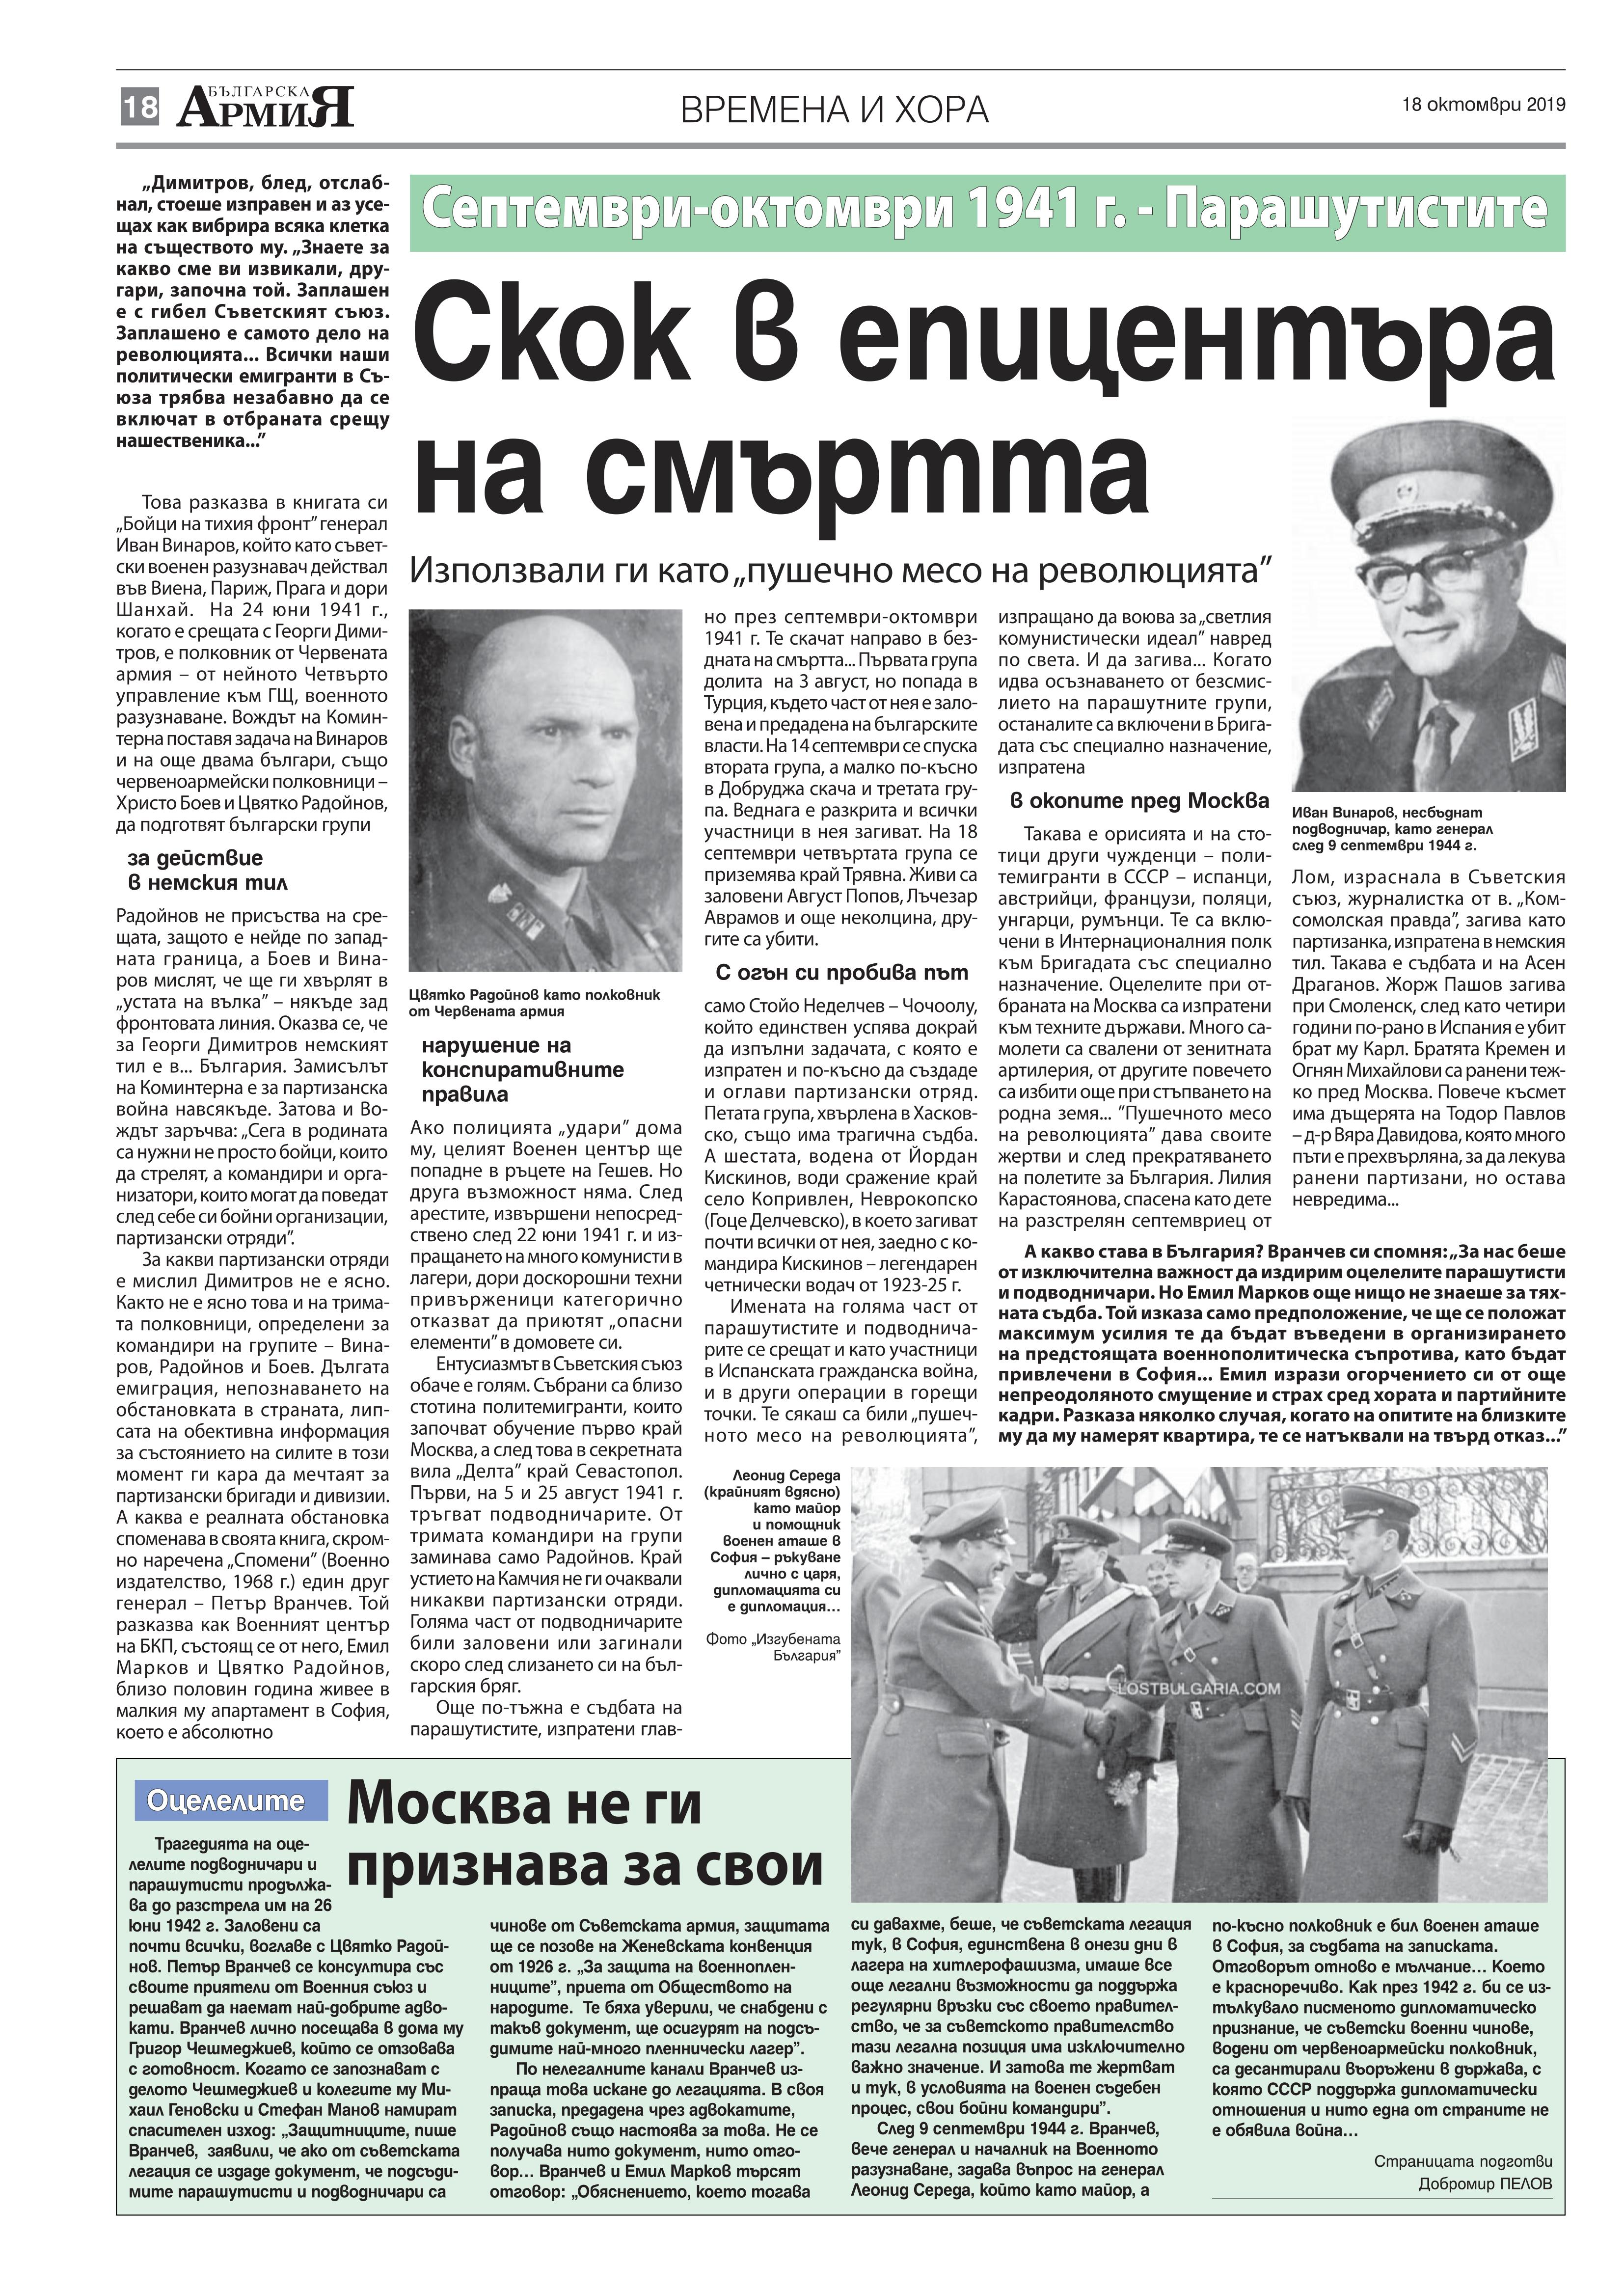 https://armymedia.bg/wp-content/uploads/2015/06/18.page1_-112.jpg